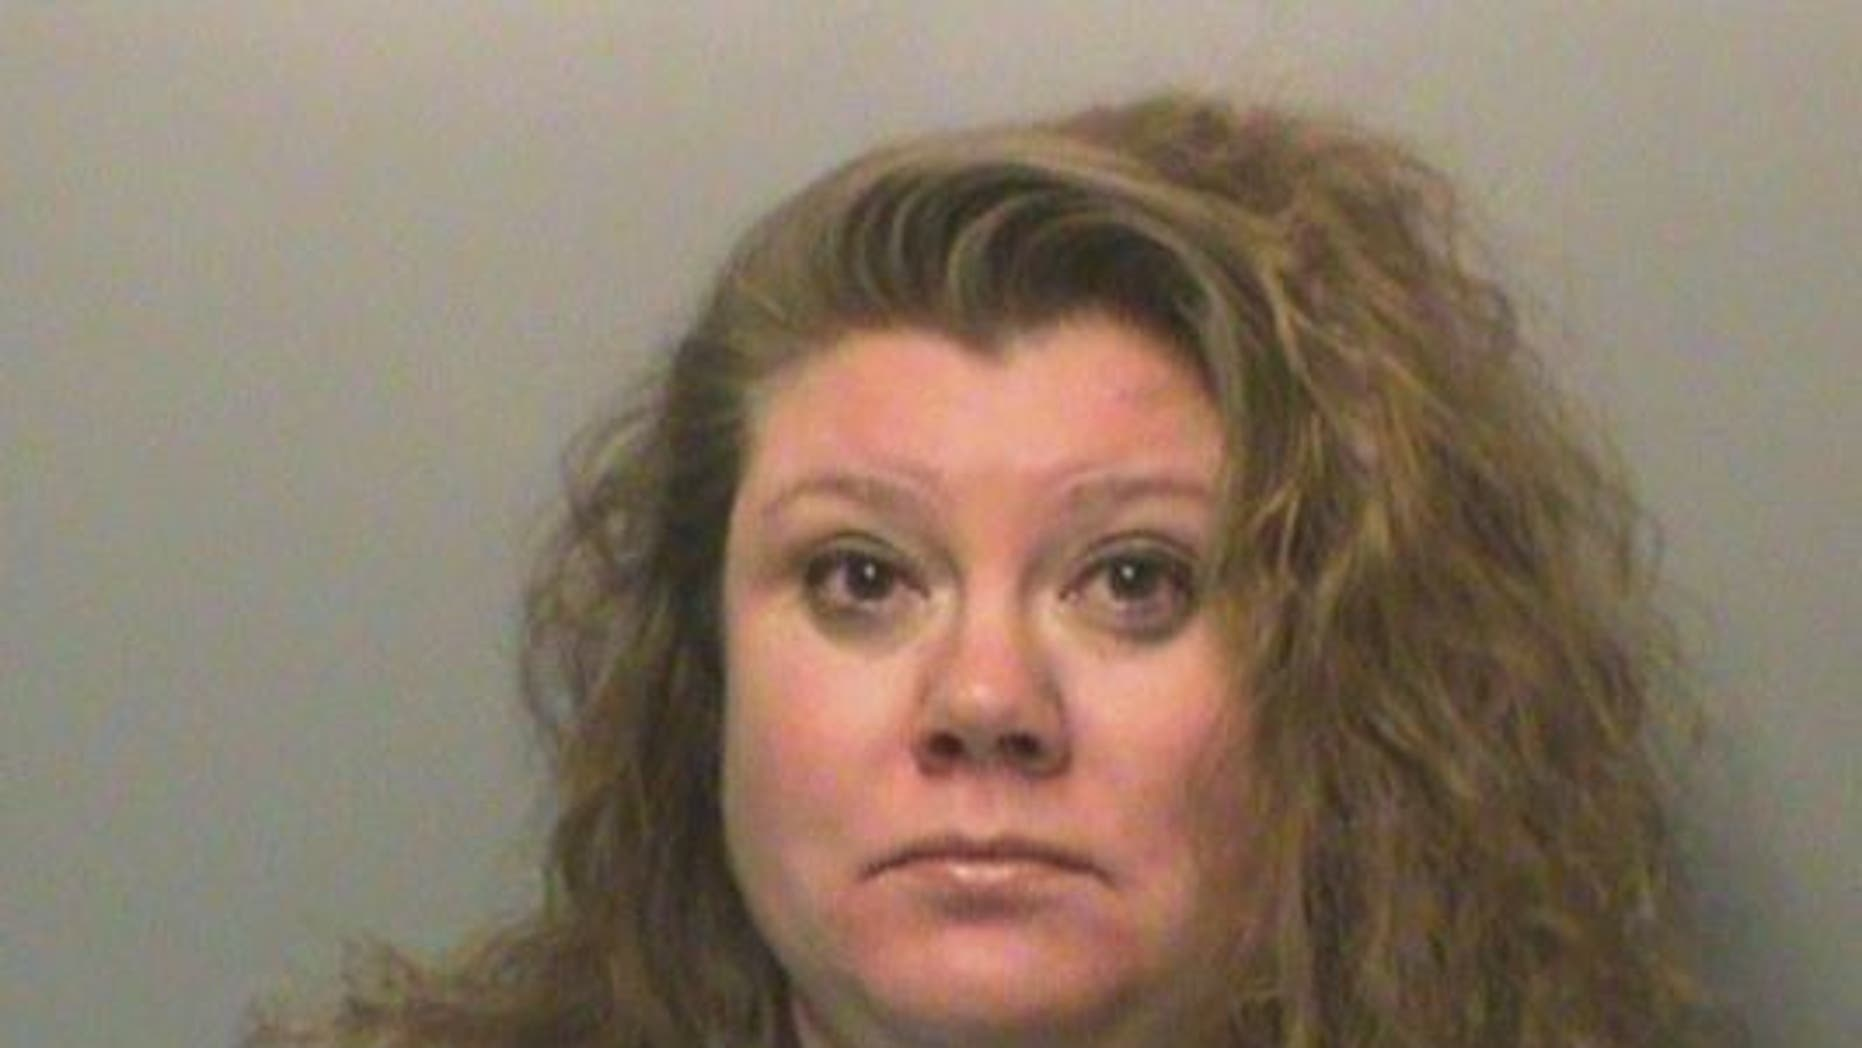 Angela Hircock, 43, from Winterset, Iowa, was arrested in March after co-workers told authorities they thought she was drunk at her preschool teaching job.